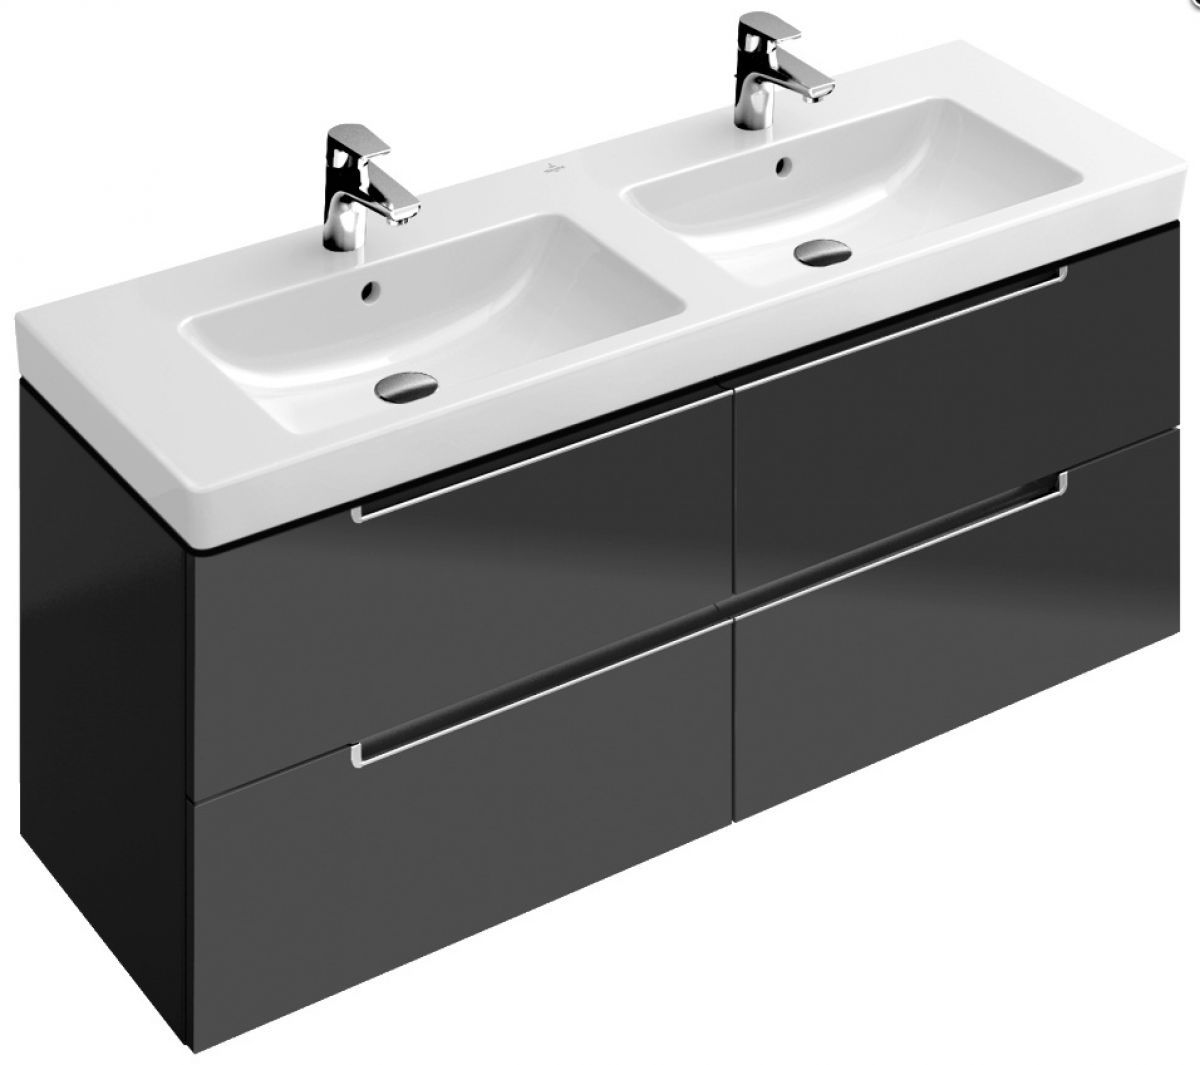 Glas Waschbecken Villeroy & Boch Villeroy And Boch Subway 2 Double Washbasin Vanity Unit